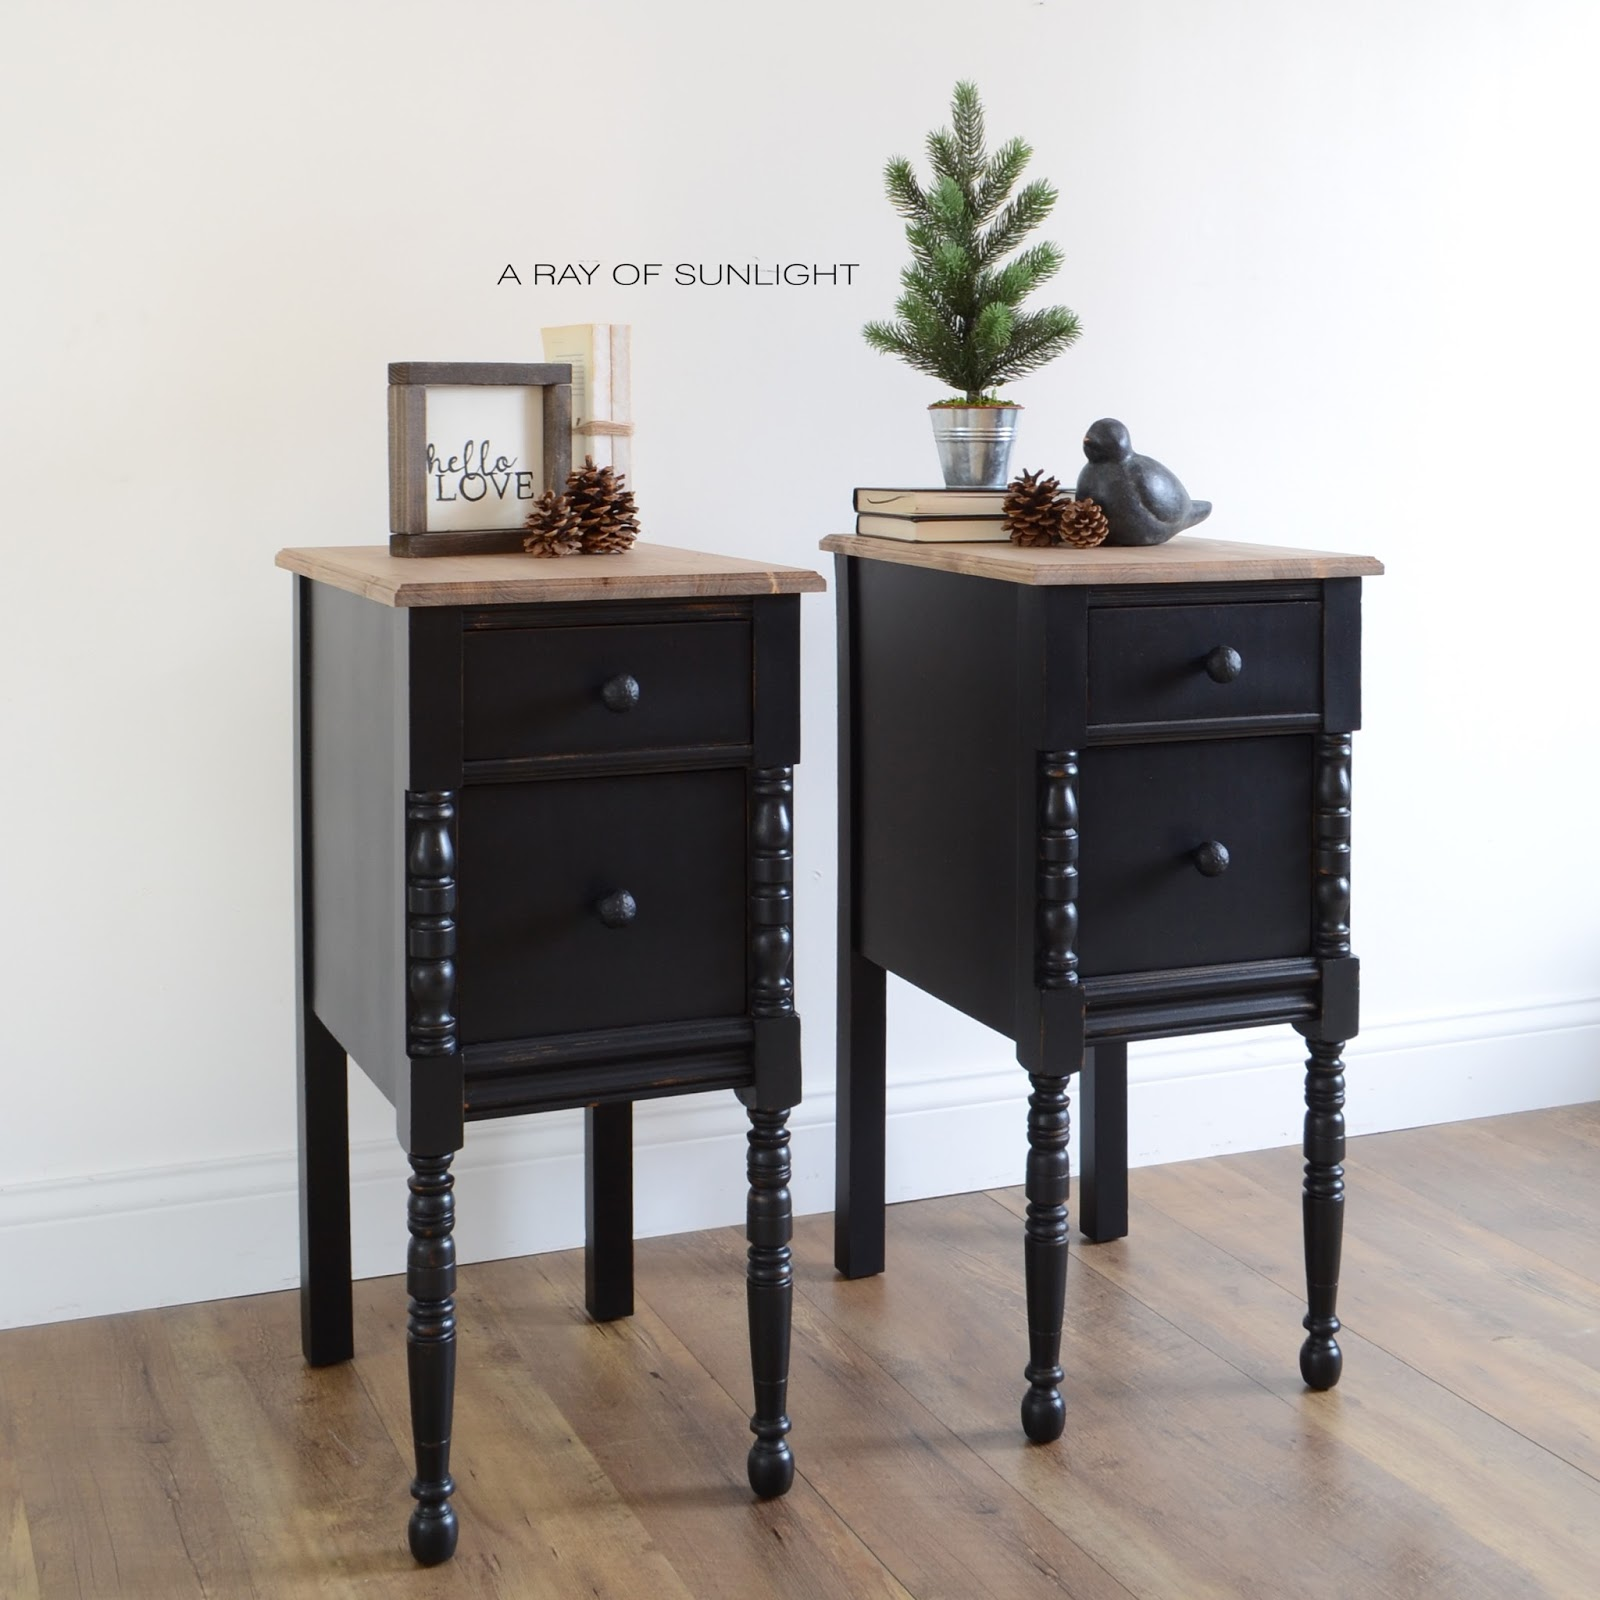 Black Vintage Farmhouse Nightstands with Rustic Wood Tops by A Ray of Sunlight in Country Chic Paint's Liquorice